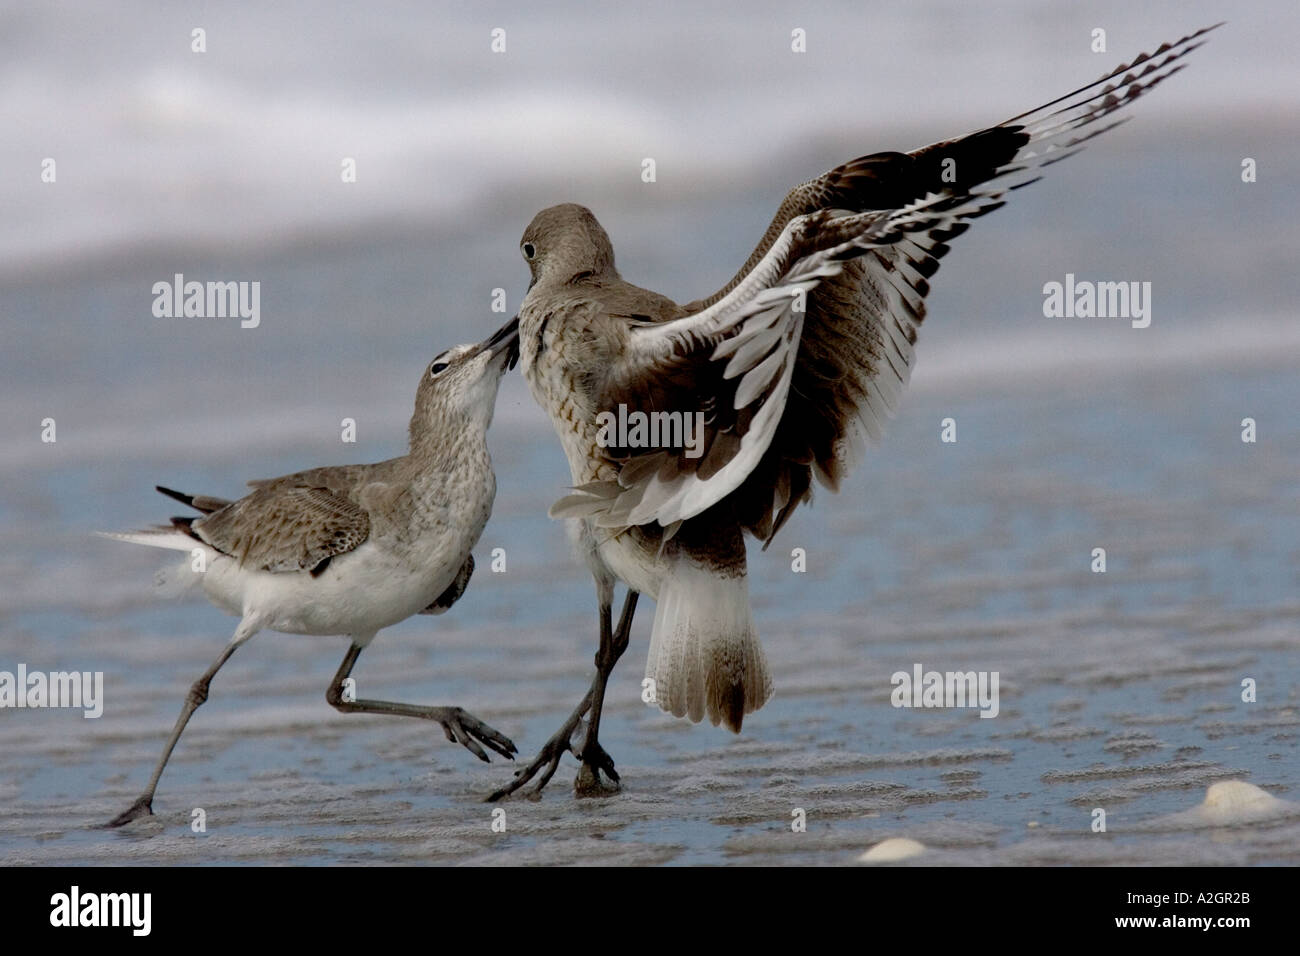 Willets fighting on a beach in Florida. Stock Photo